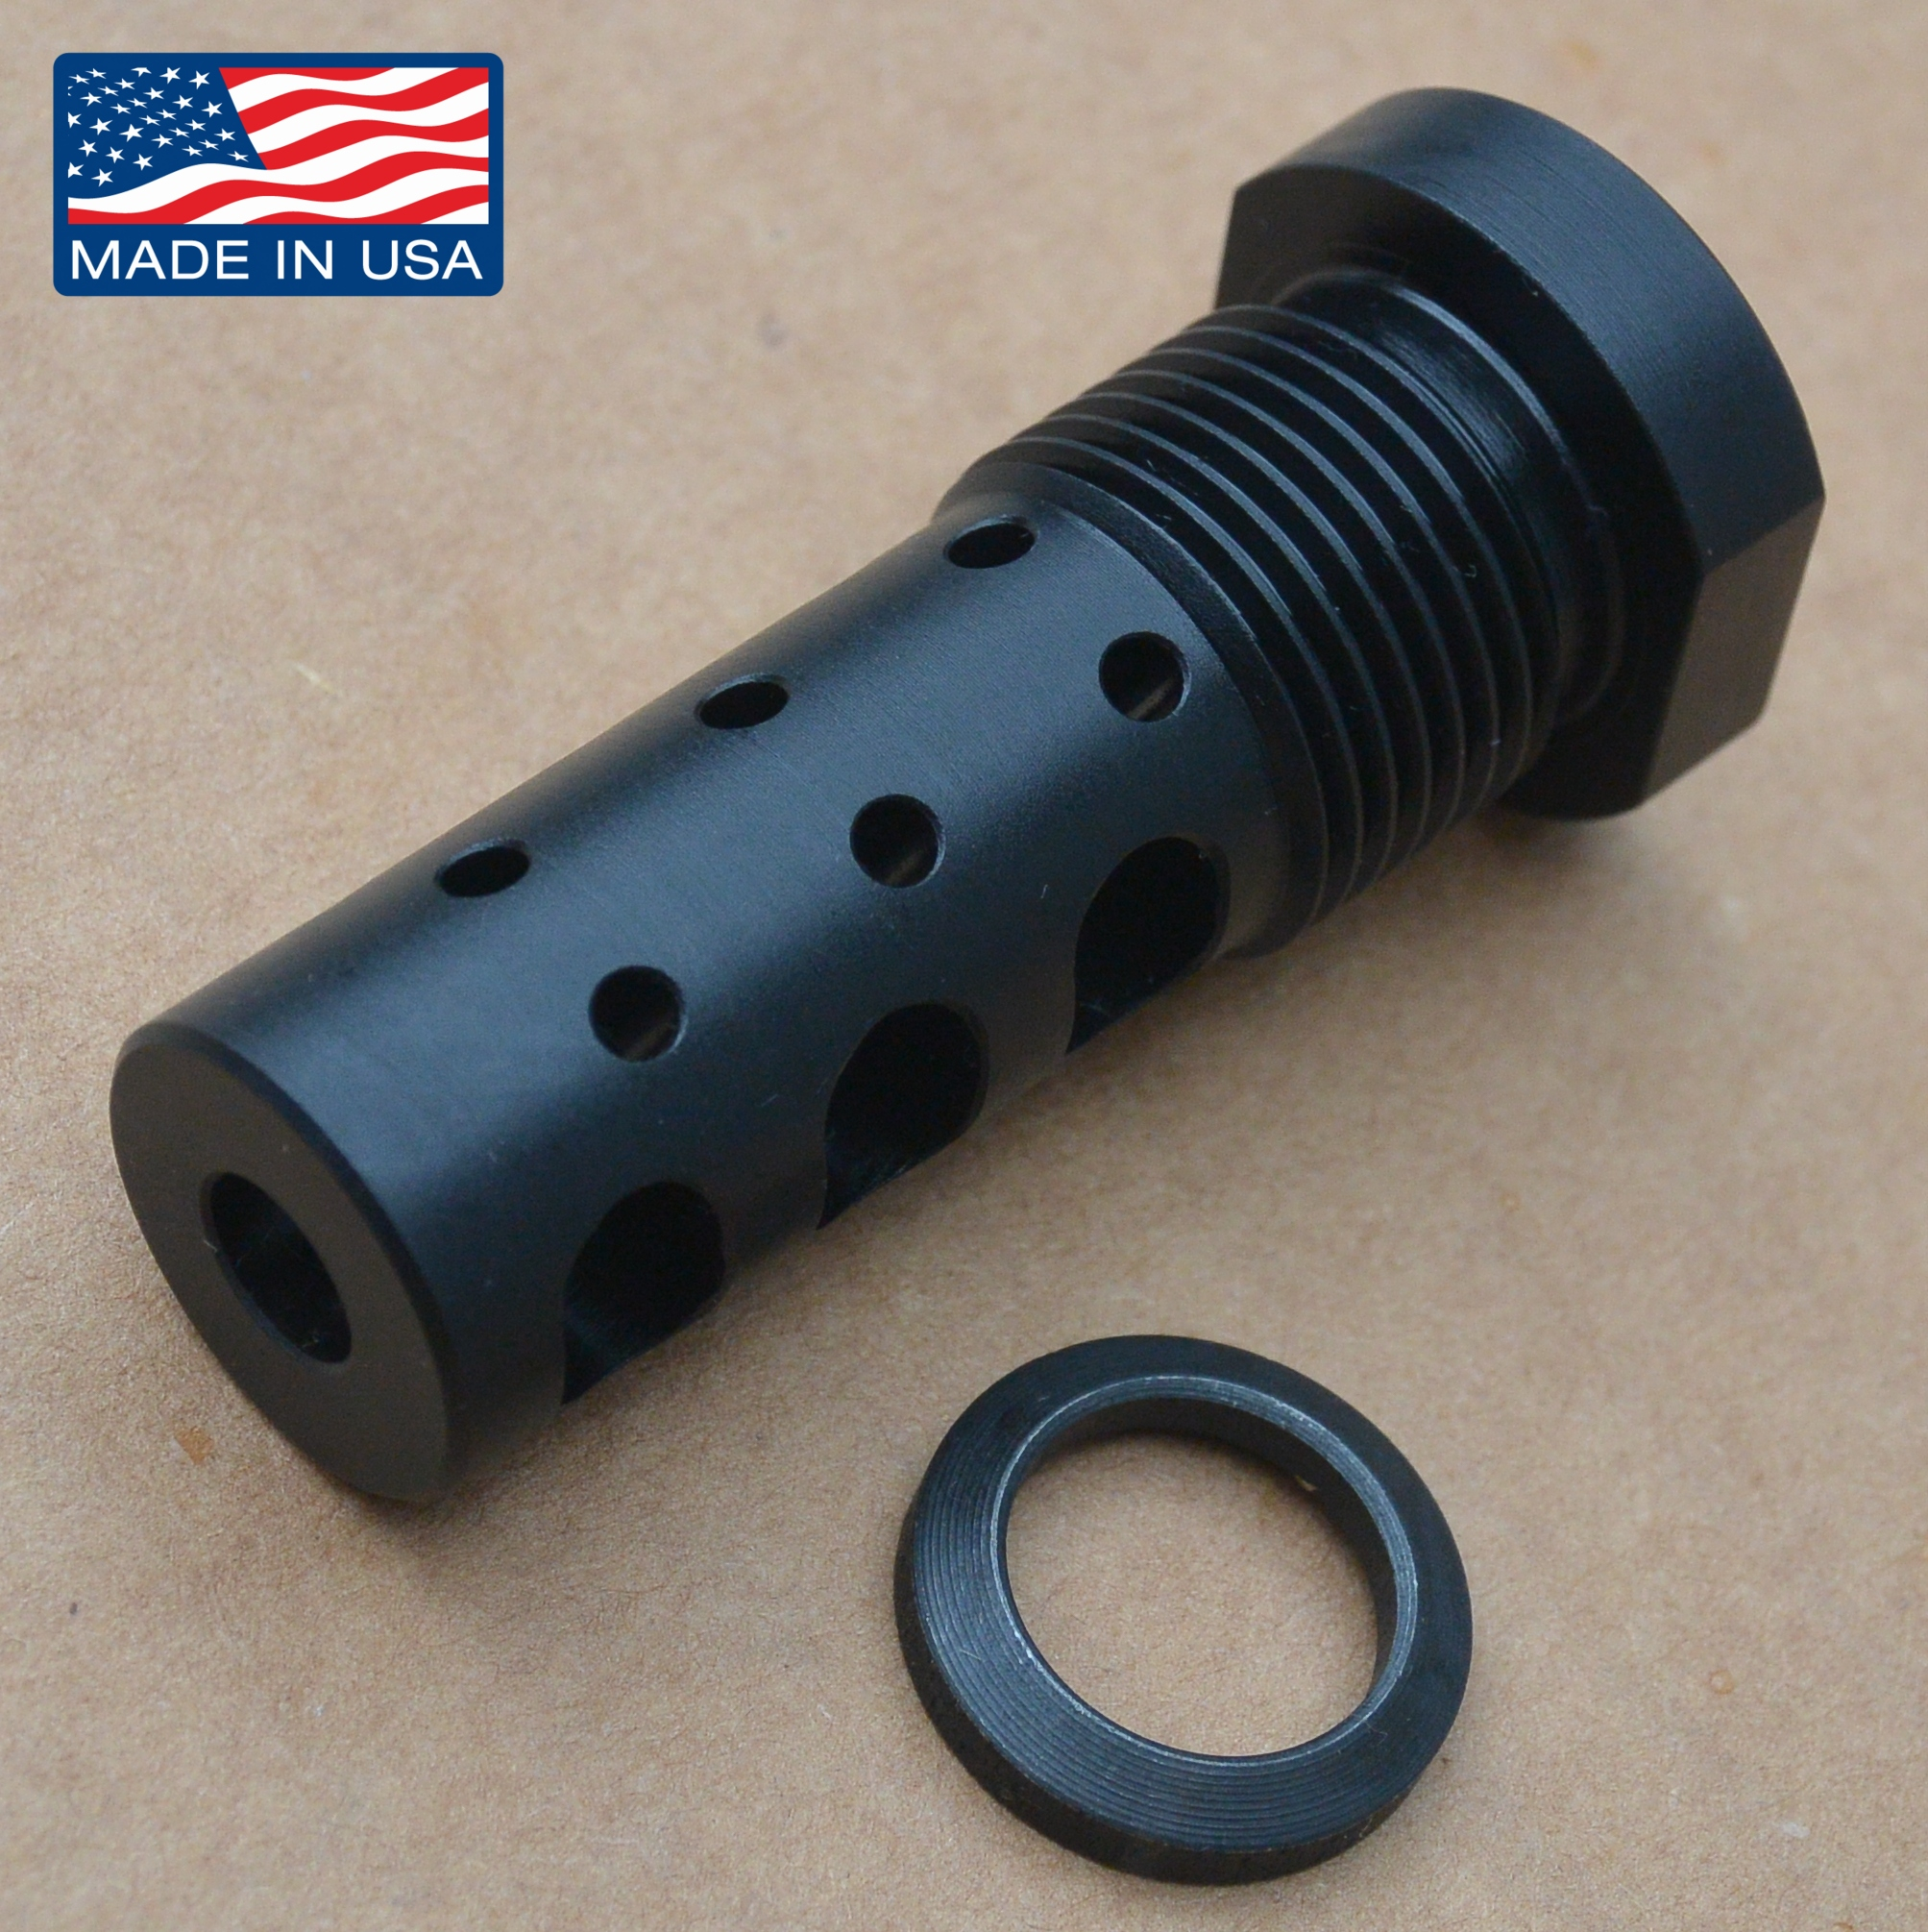 GRBV2 GAS REDIRECTING MULTIPURPOSE MUZZLE BRAKE EXTERNAL THREAD ADAPTER  13/16″